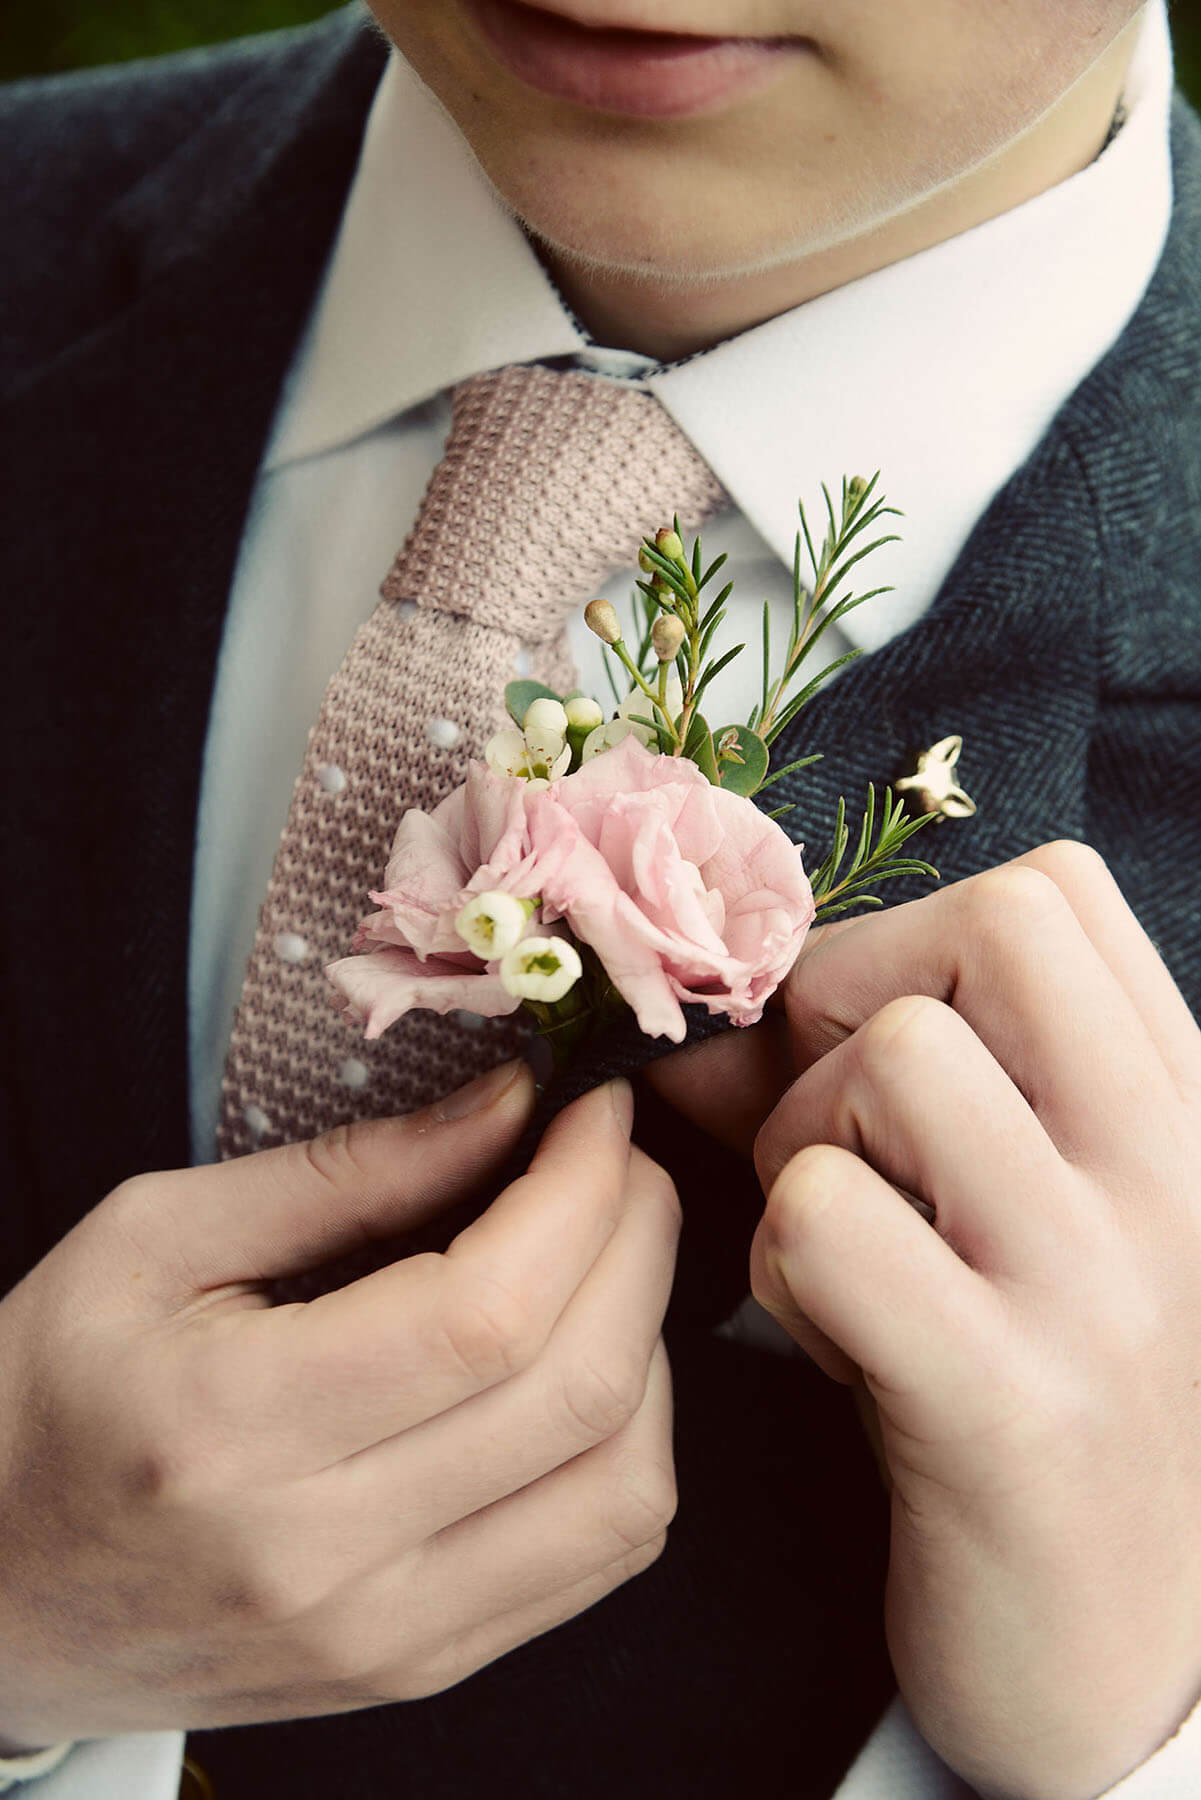 Male wedding guest attaching a rose to his suit jacket